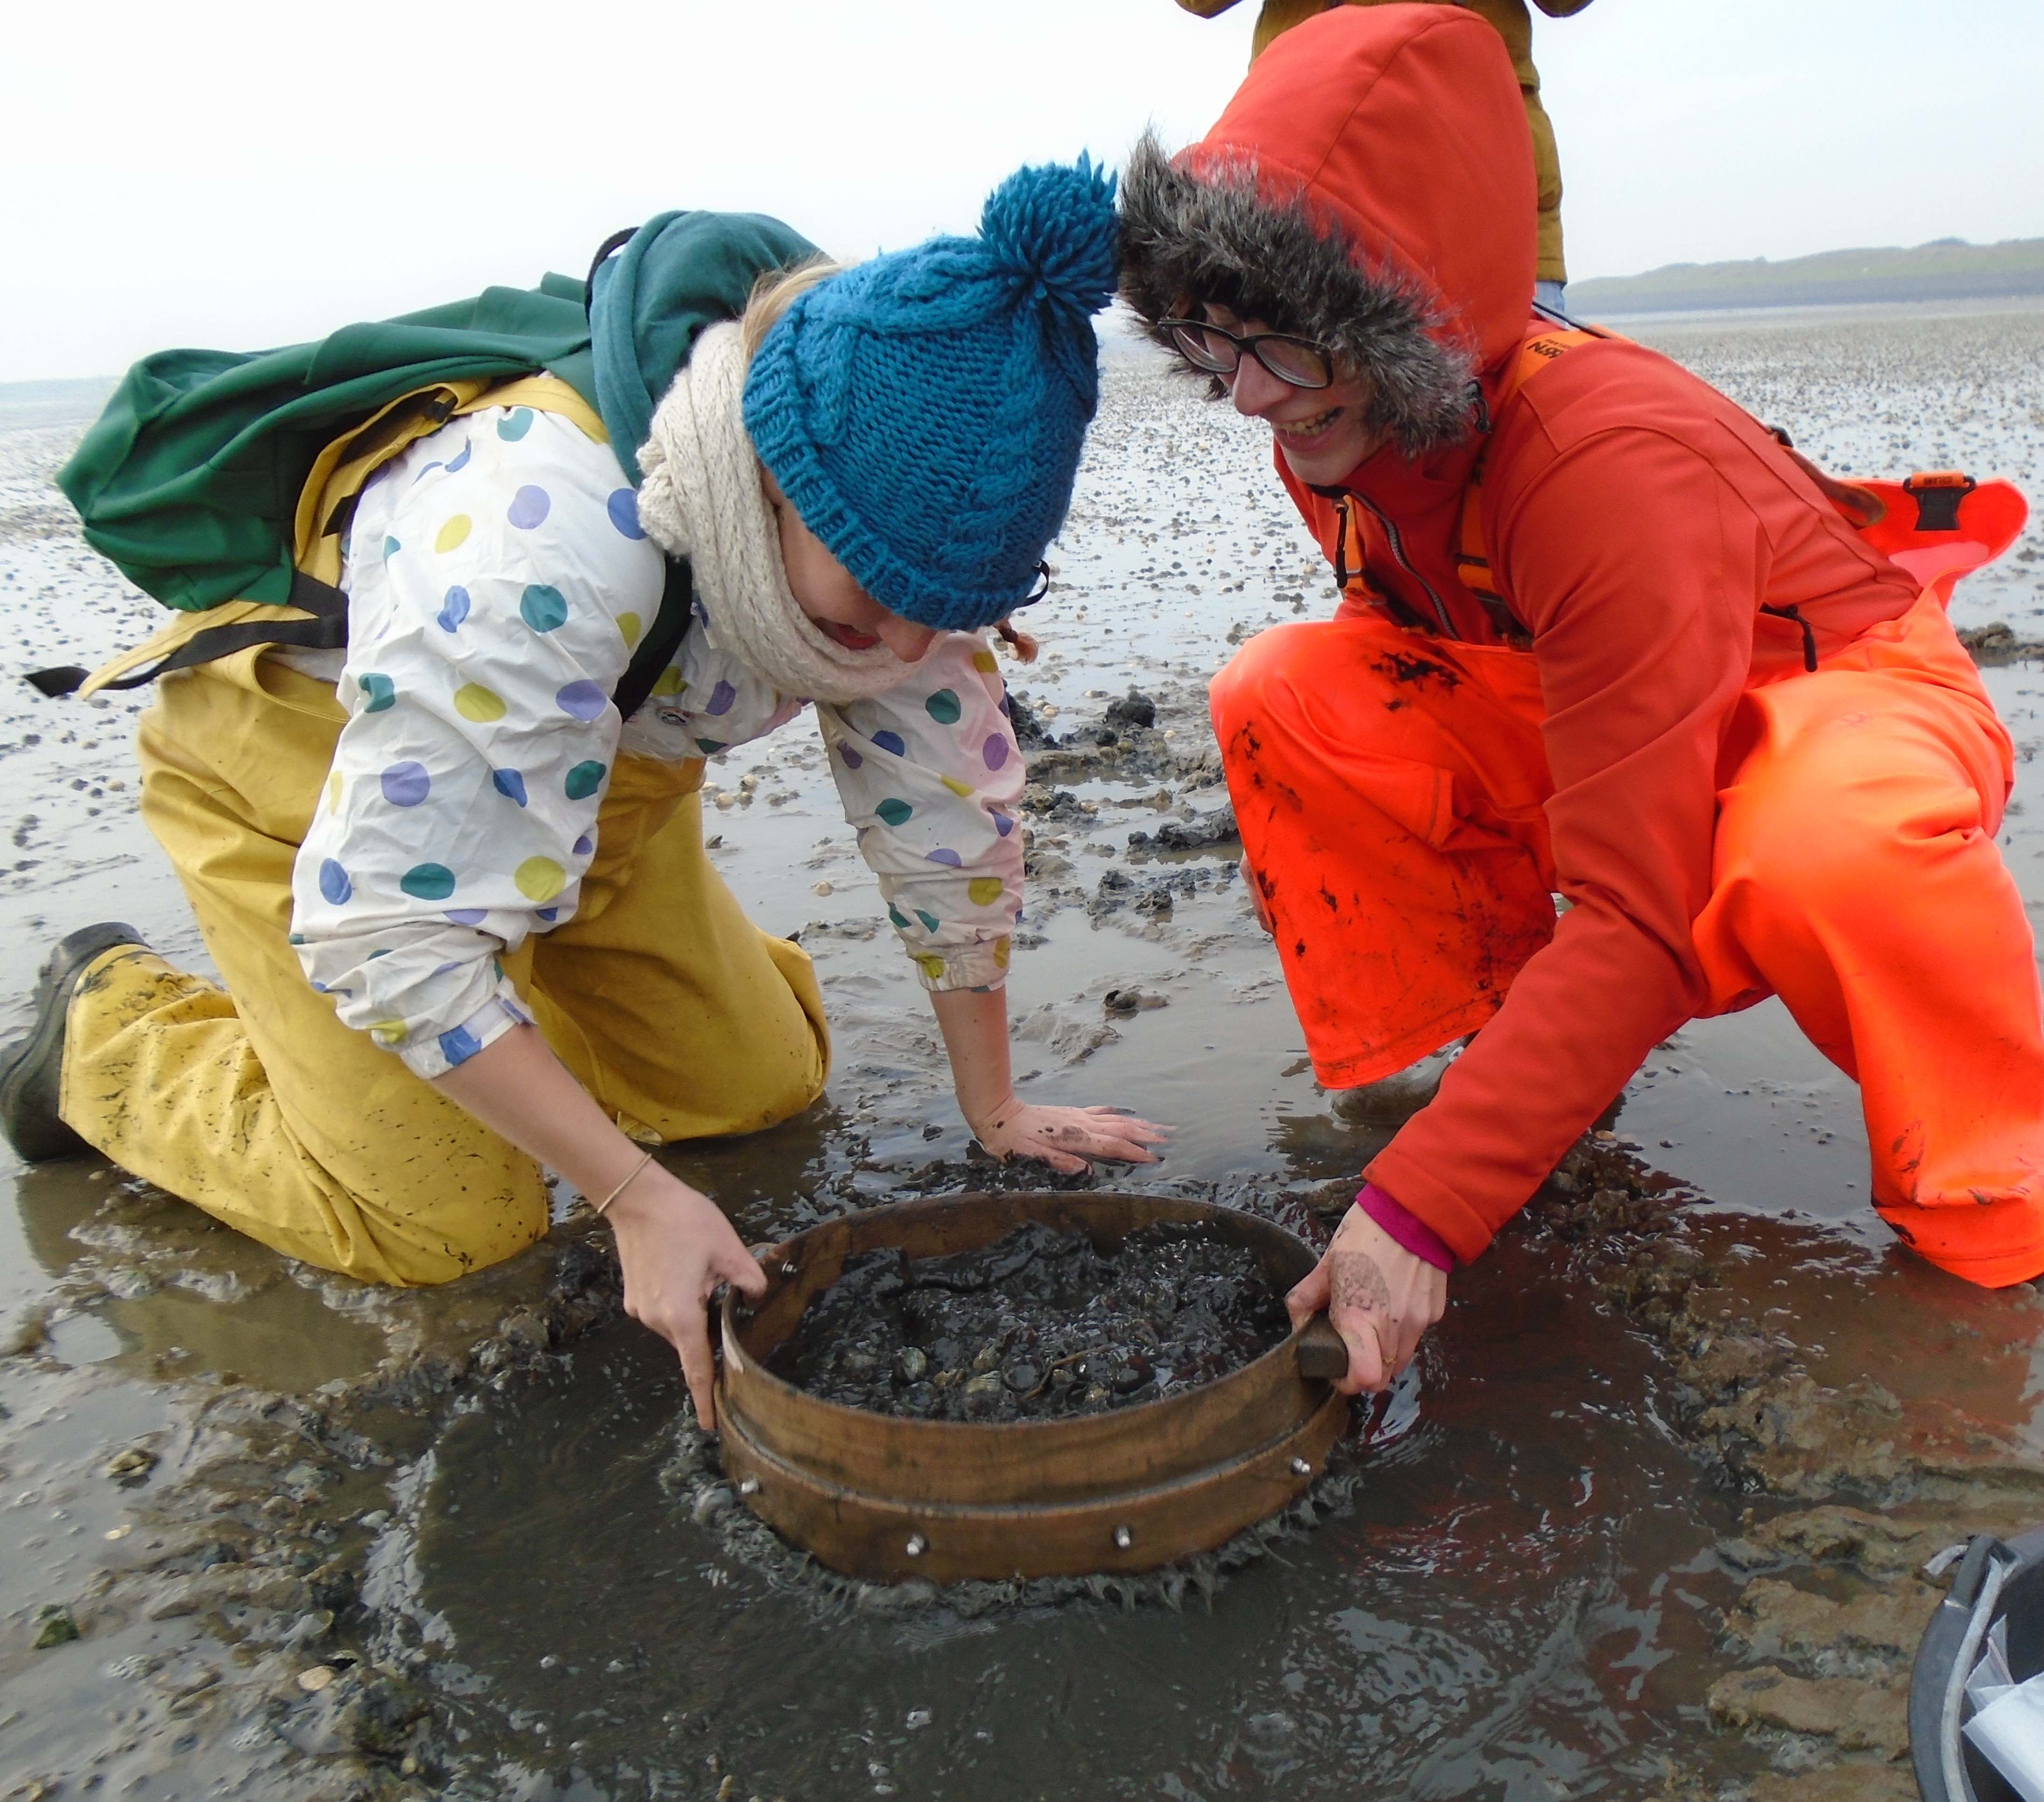 Sieving cockles